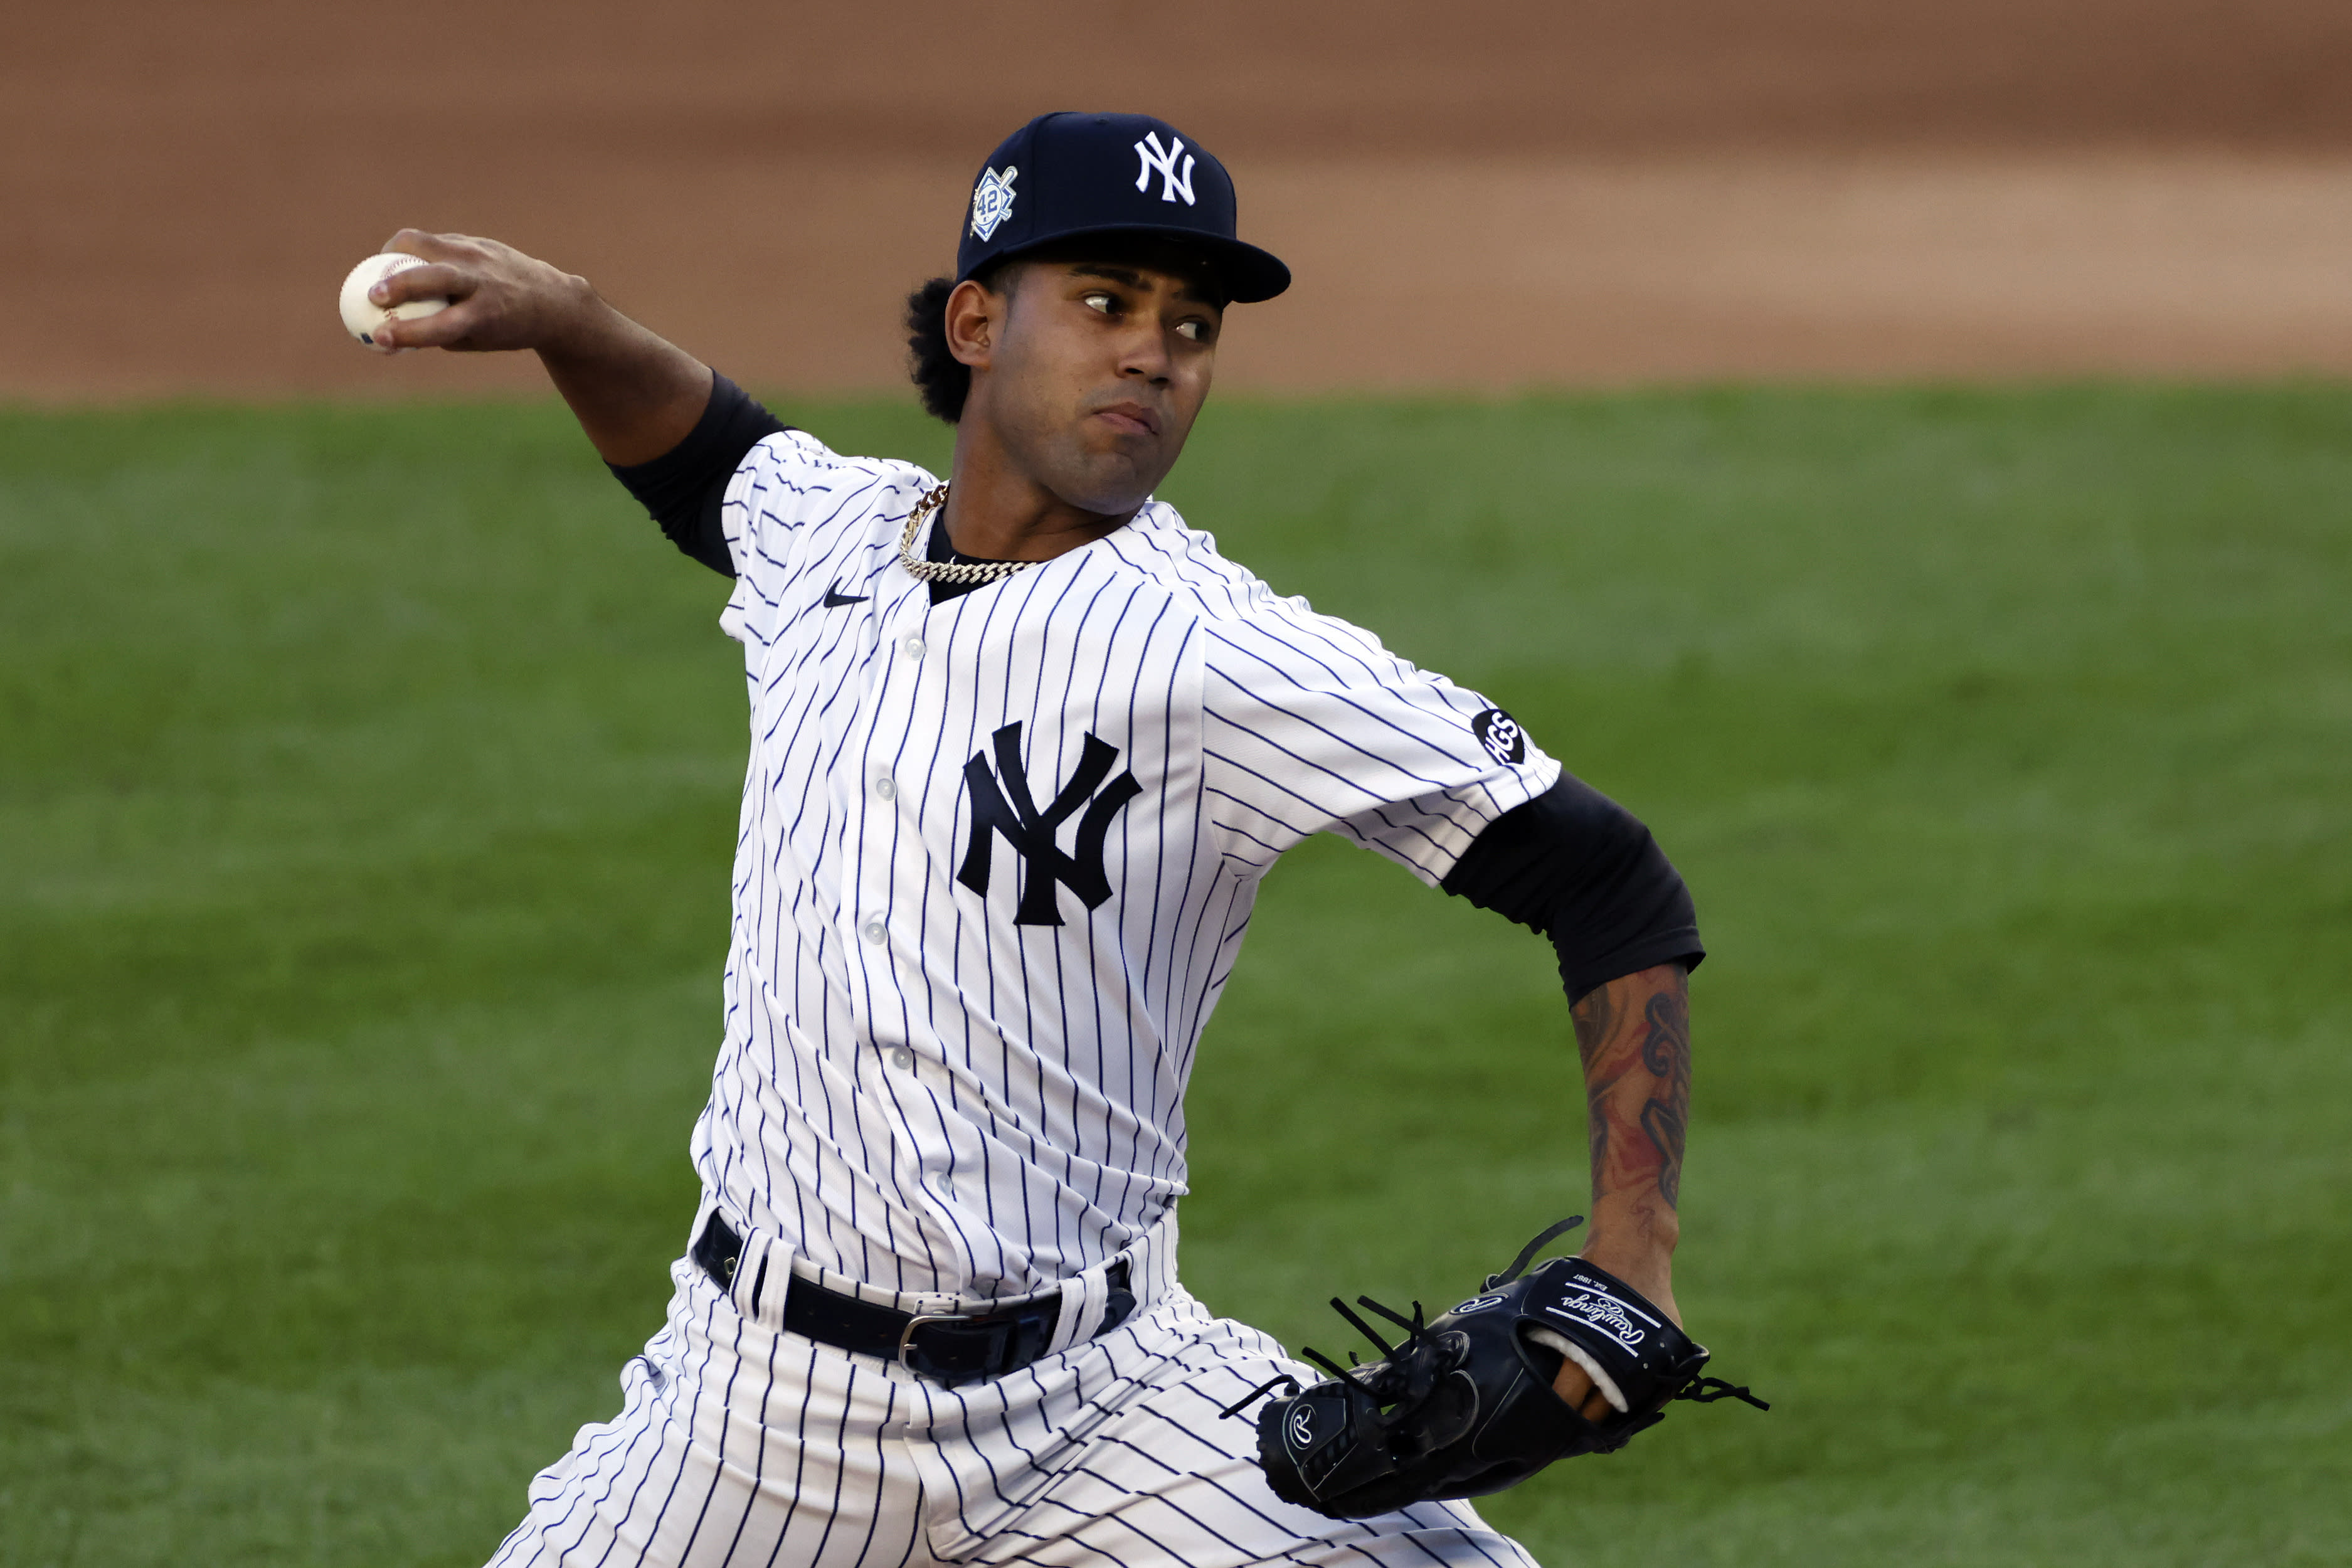 New York Yankees pitcher Deivi García delivers against the New York Mets during the third inning of the second baseball game of a doubleheader, Sunday, Aug. 30, 2020, in New York. (AP Photo/Adam Hunger)